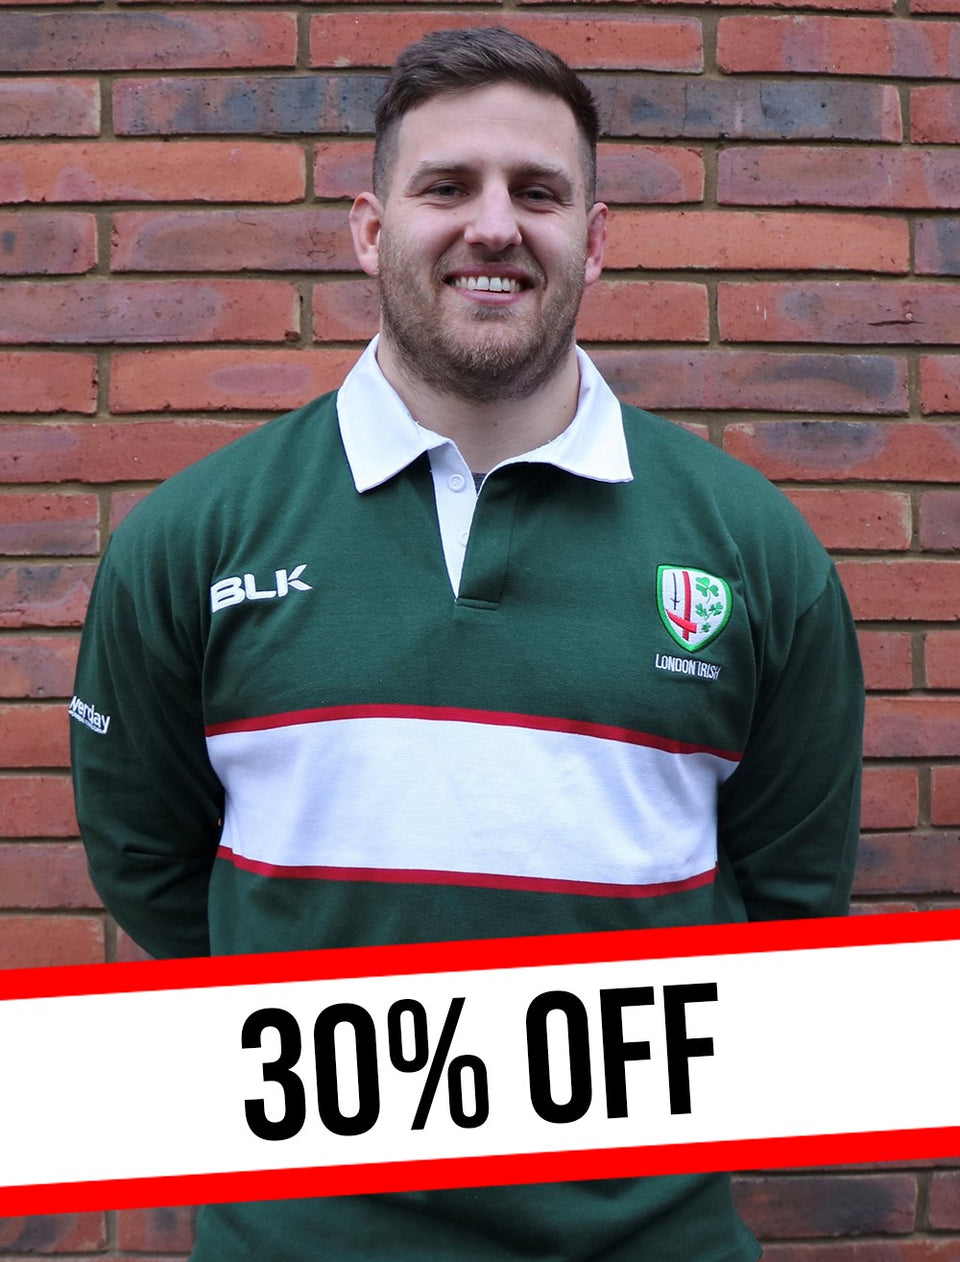 30% OFF - Traditional Cotton Rugby Jerseys